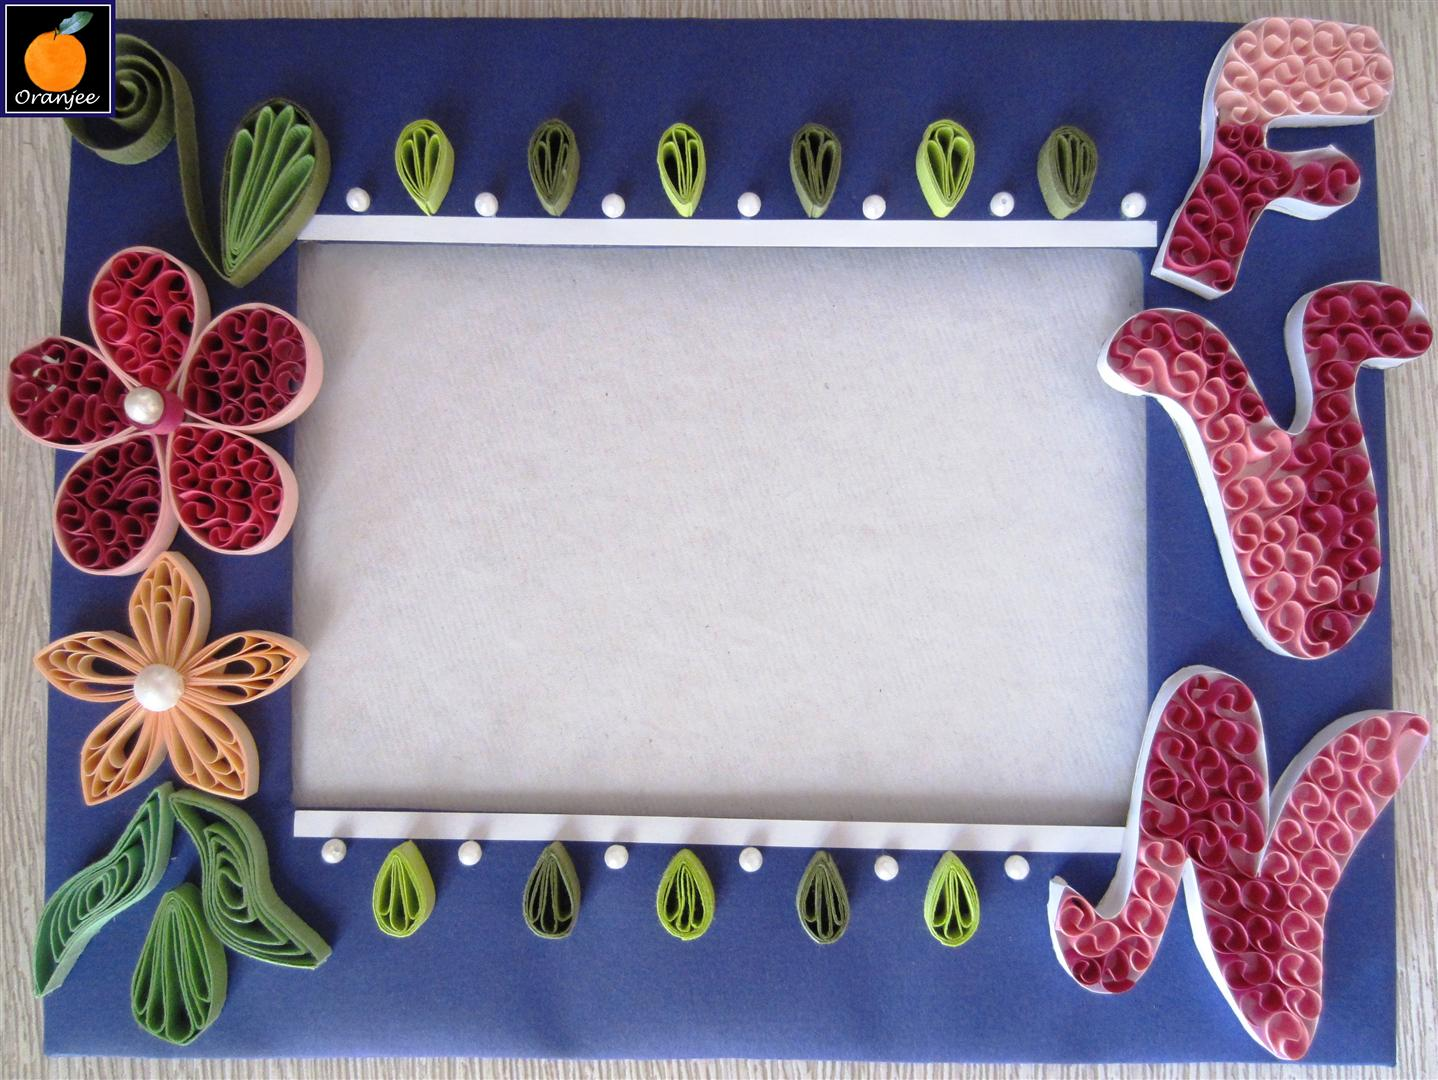 my craft work fun with frame